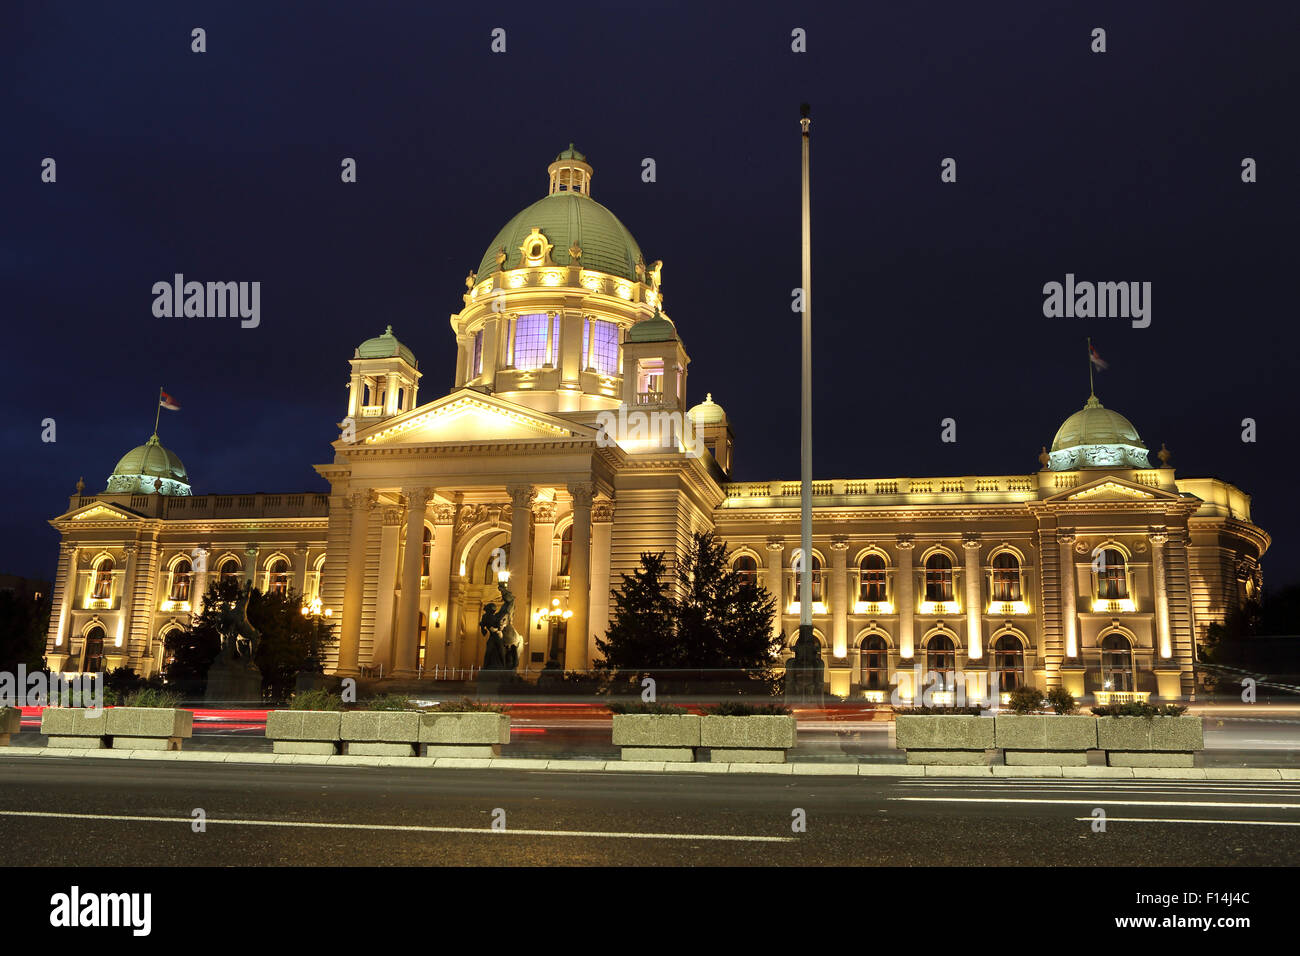 The Serbian Parliament building in Belgrade, Serbia. The building is illuminated. - Stock Image